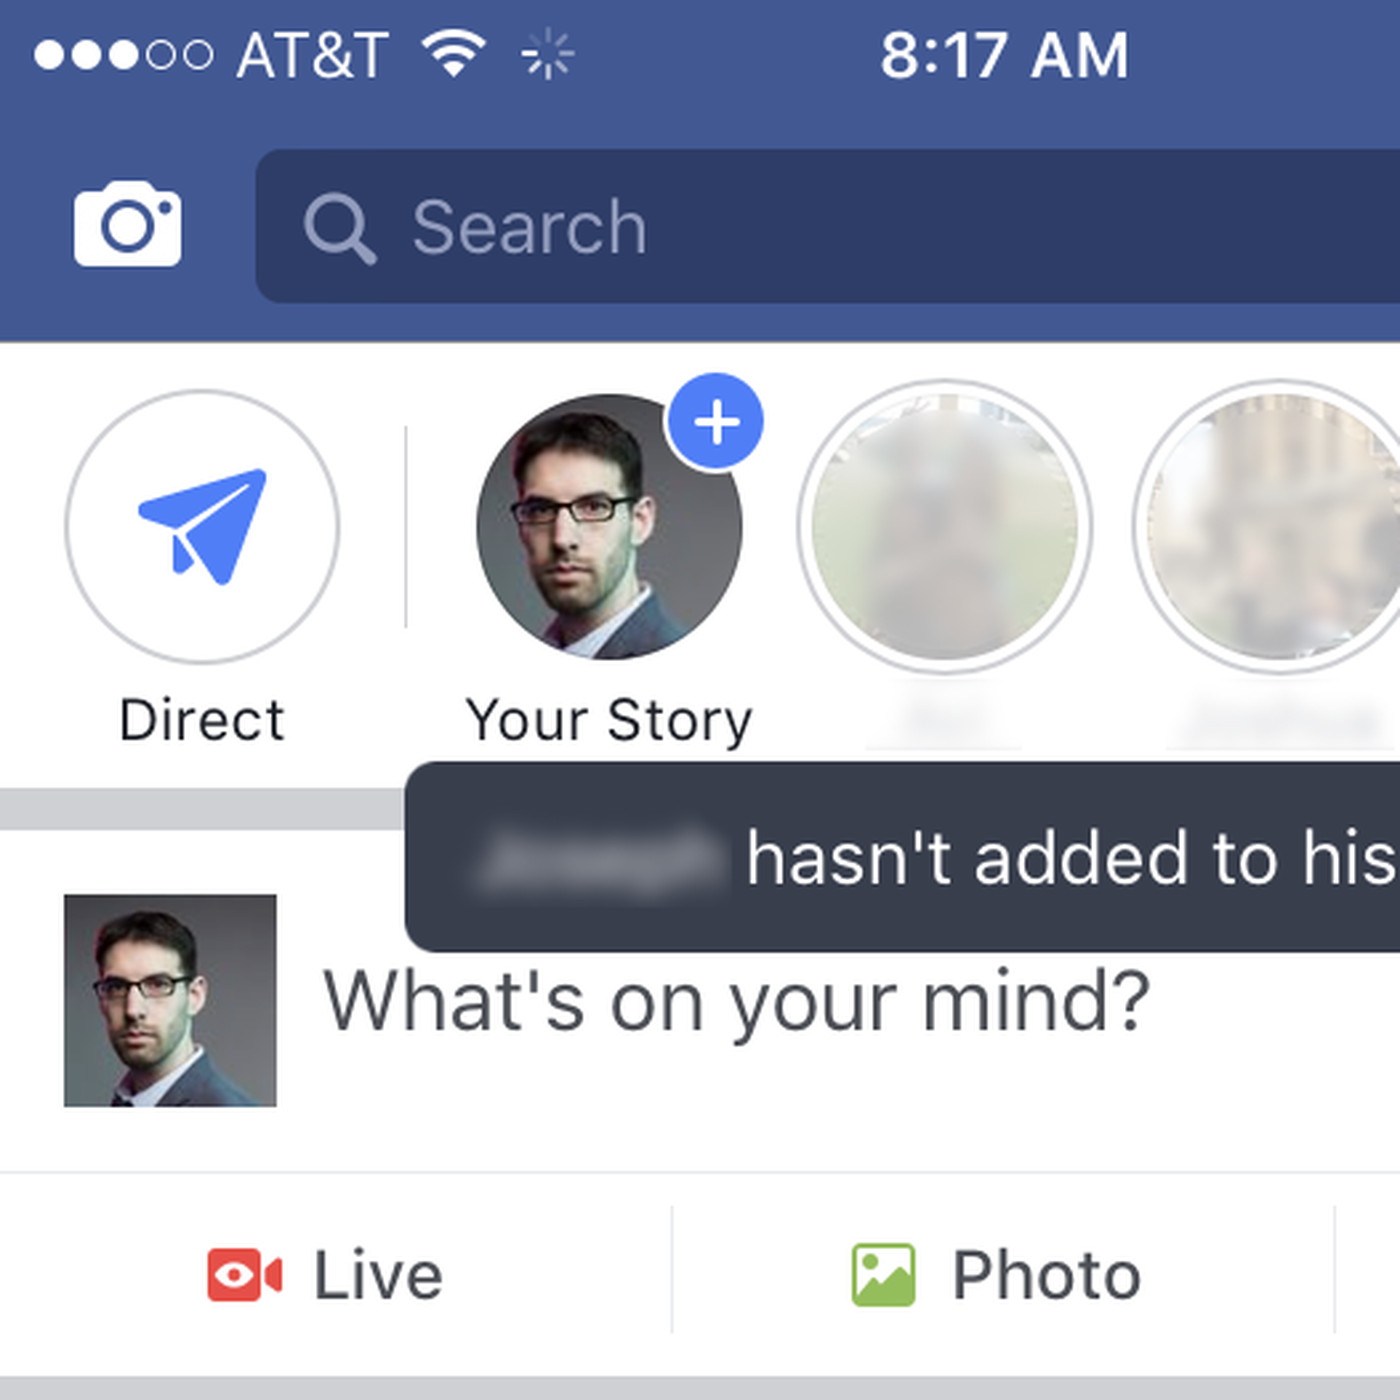 No one is using Facebook stories, so it turned your friends